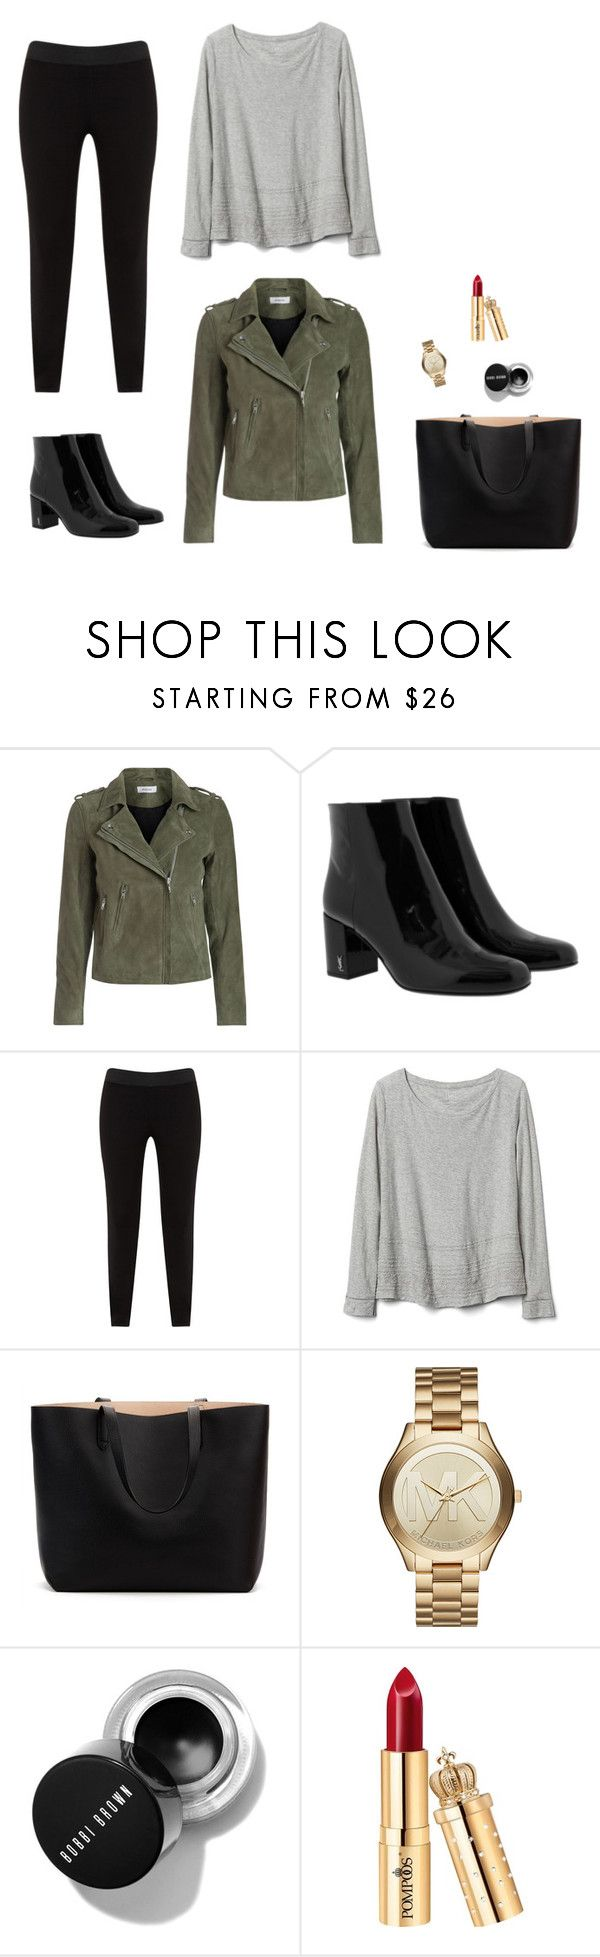 """""""Outfit inspiration"""" by monika1555 on Polyvore featuring Yves Saint Laurent, JunaRose, Gap and Michael Kors"""